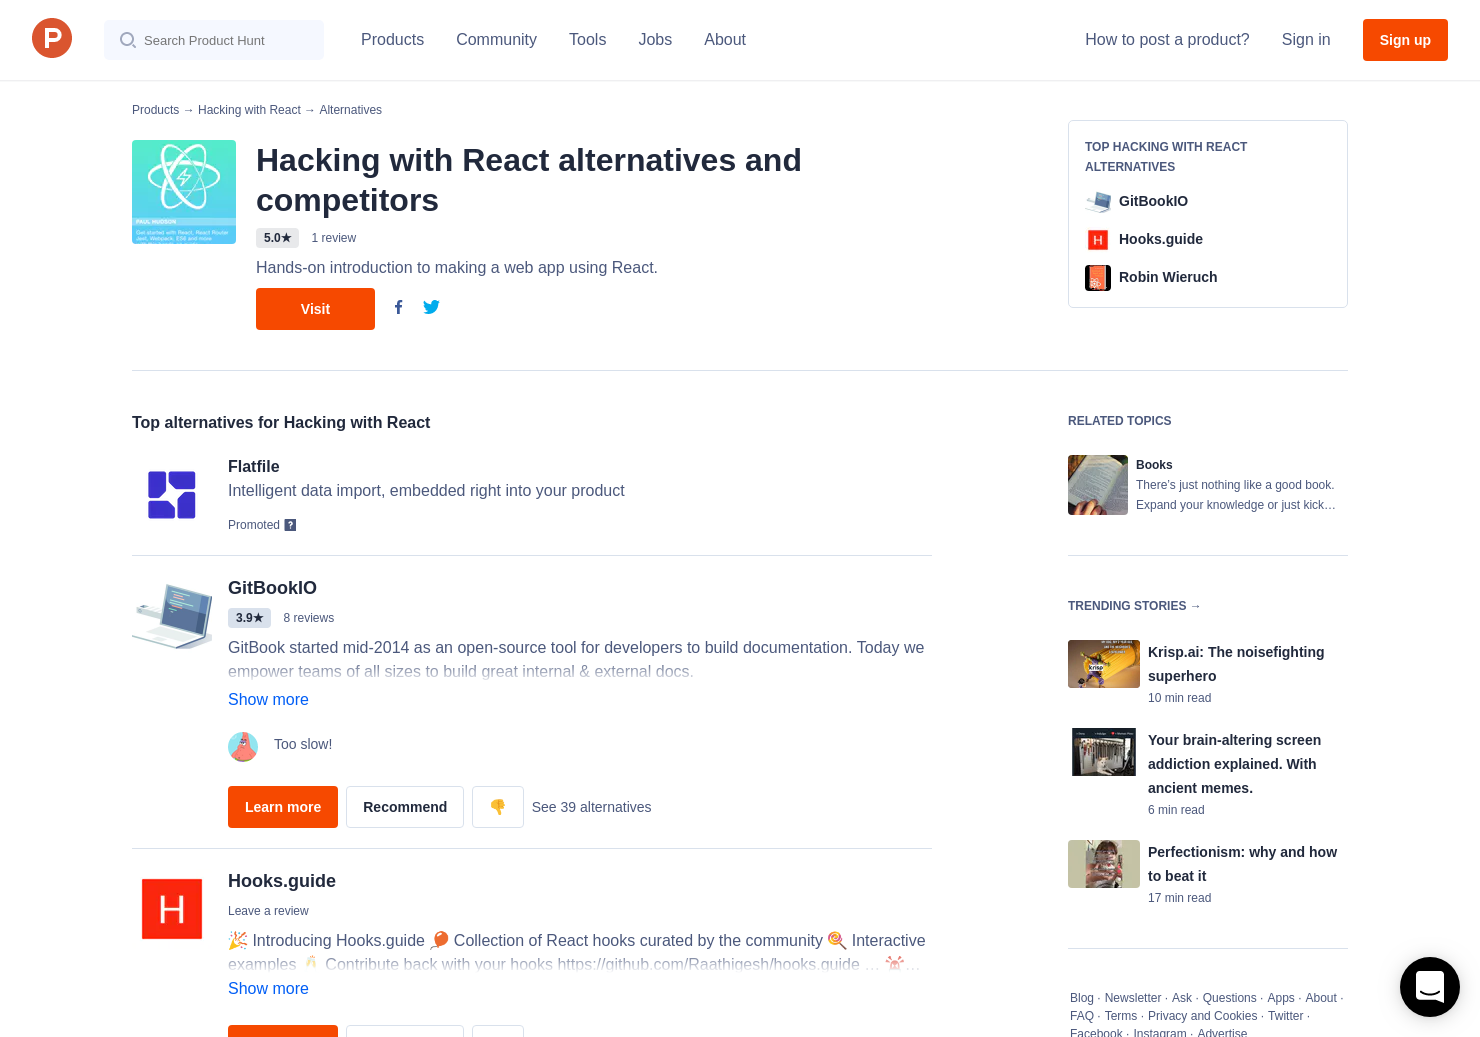 3 Alternatives to Hacking with React | Product Hunt